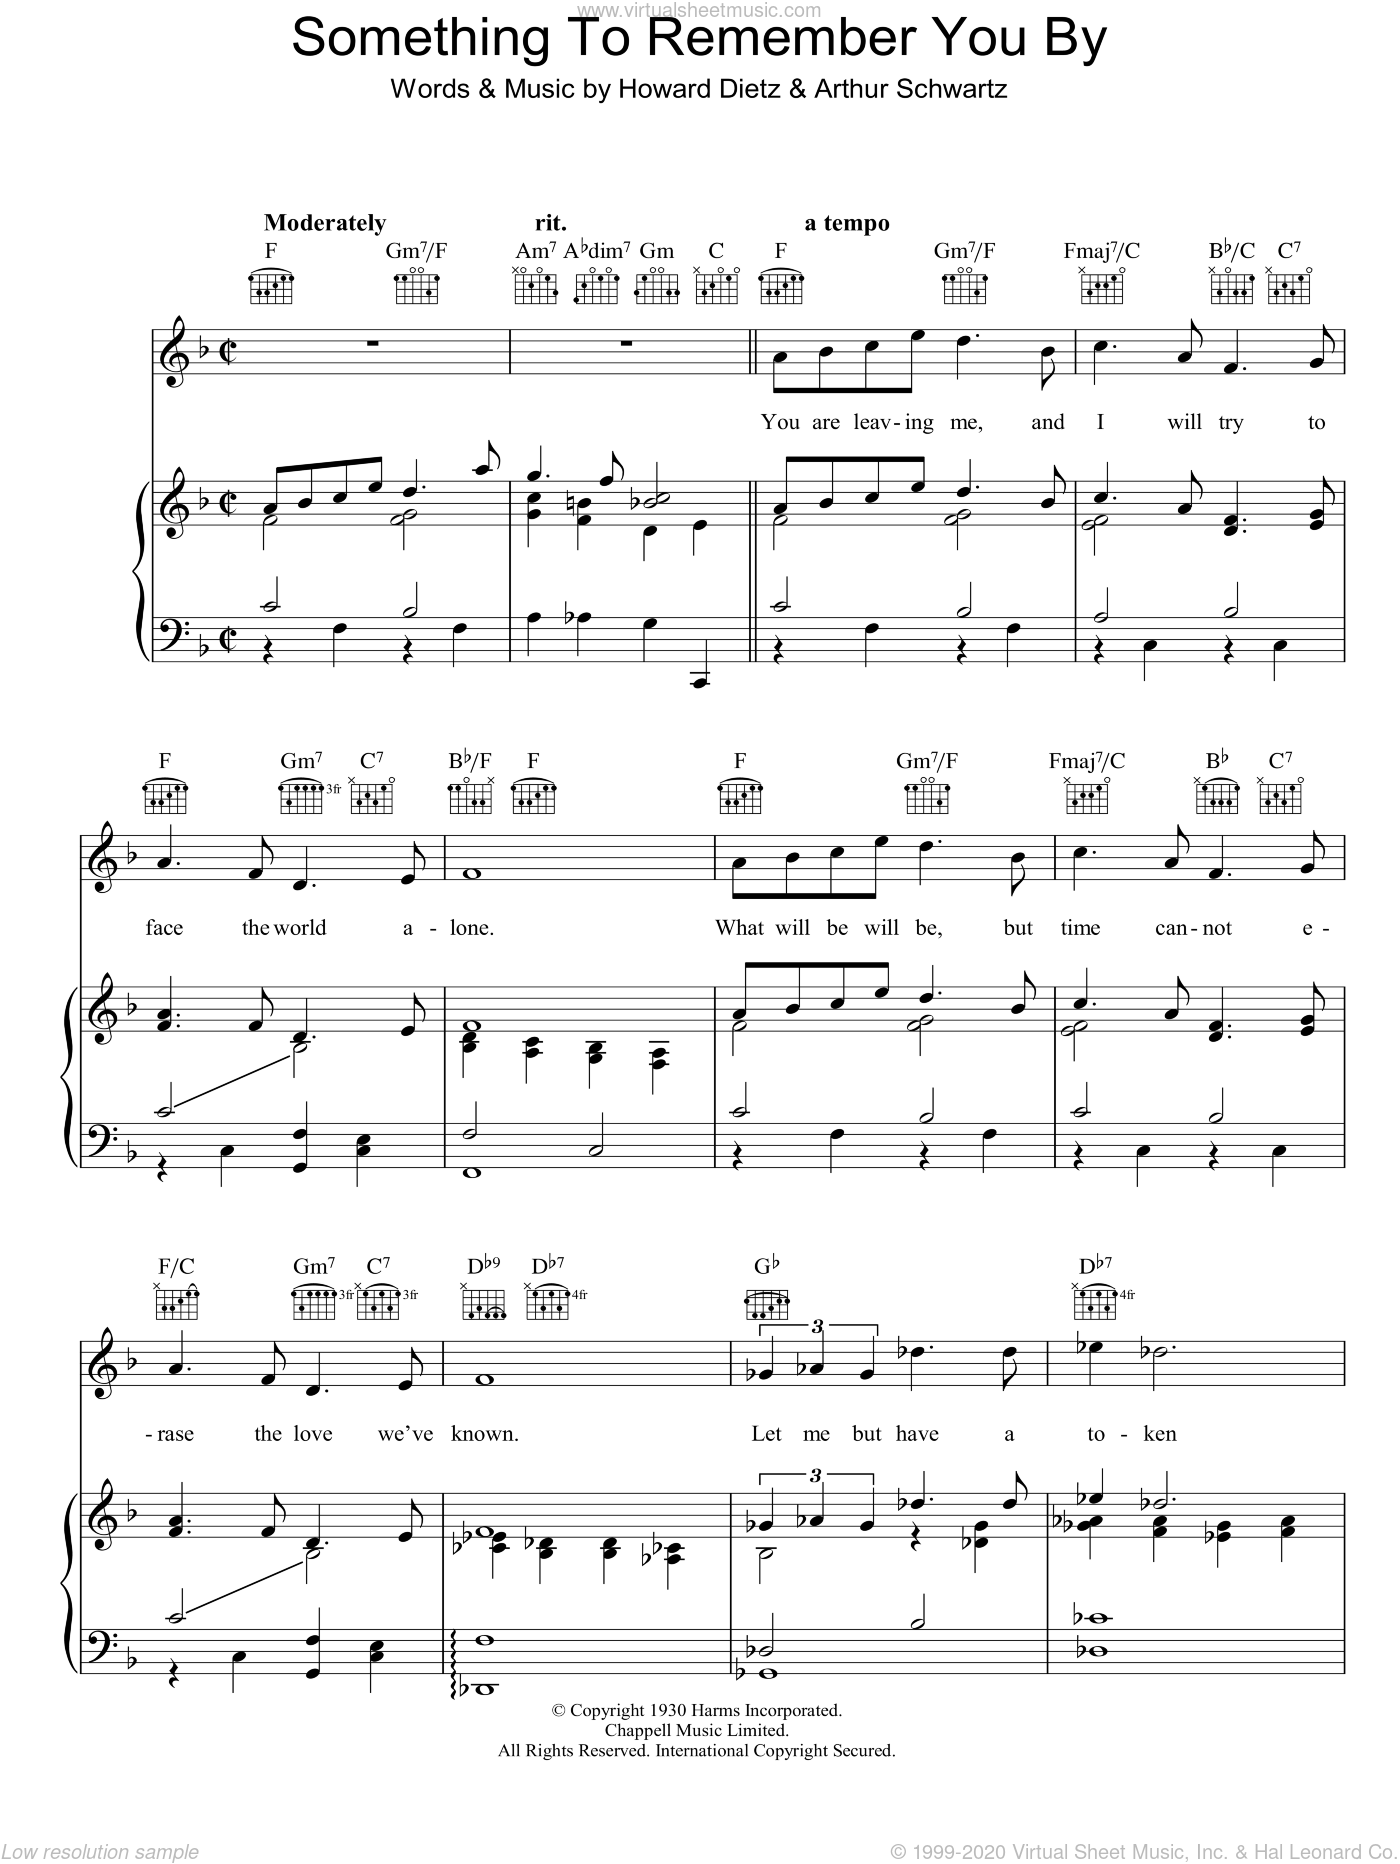 Something To Remember You By sheet music for voice, piano or guitar by Arthur Schwartz